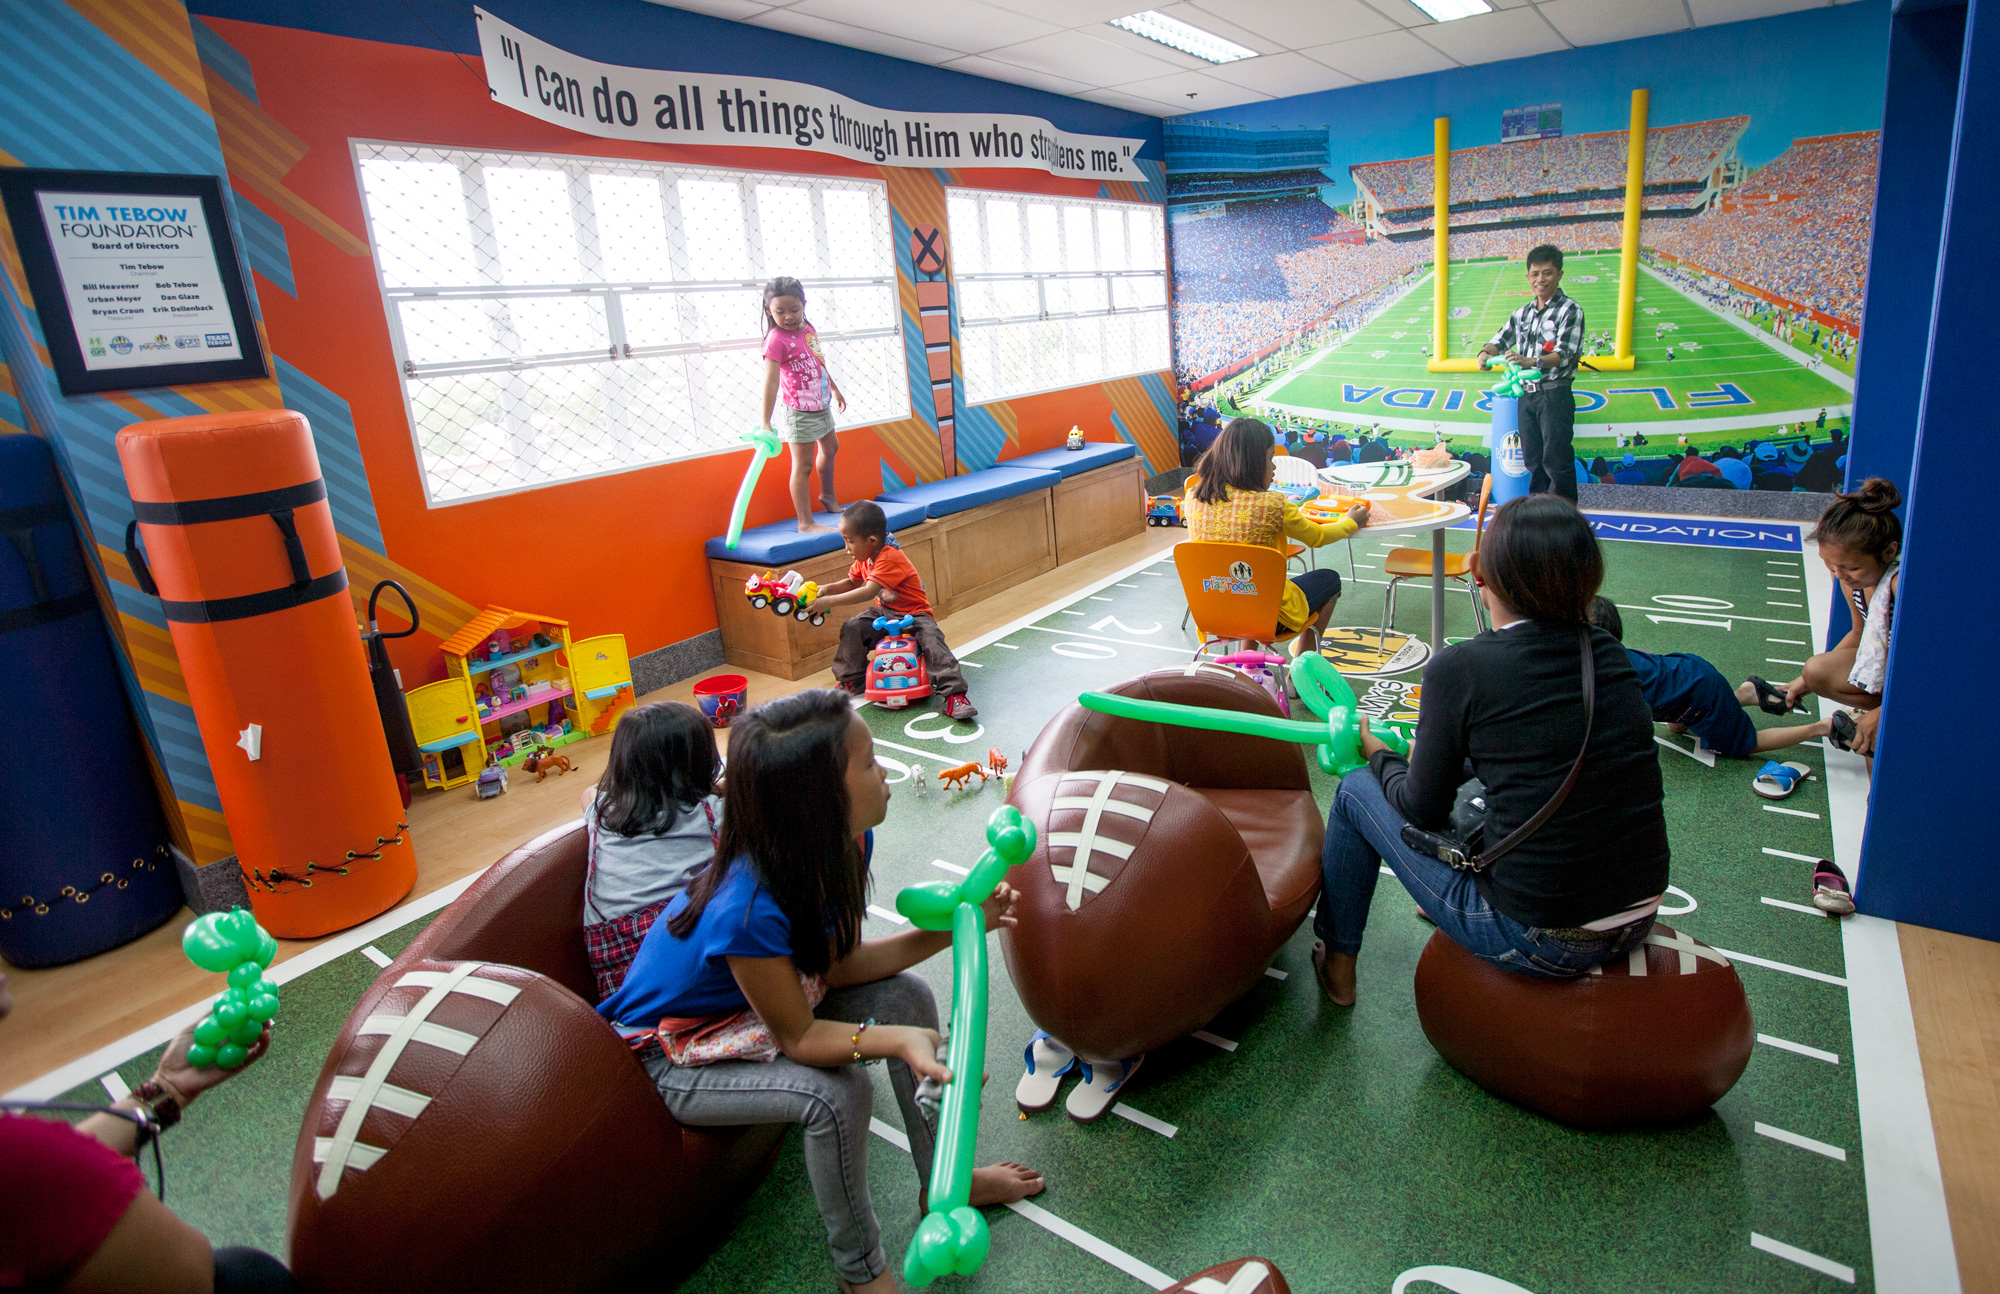 Timmy S Playrooms In Children S Hospitals Around The World